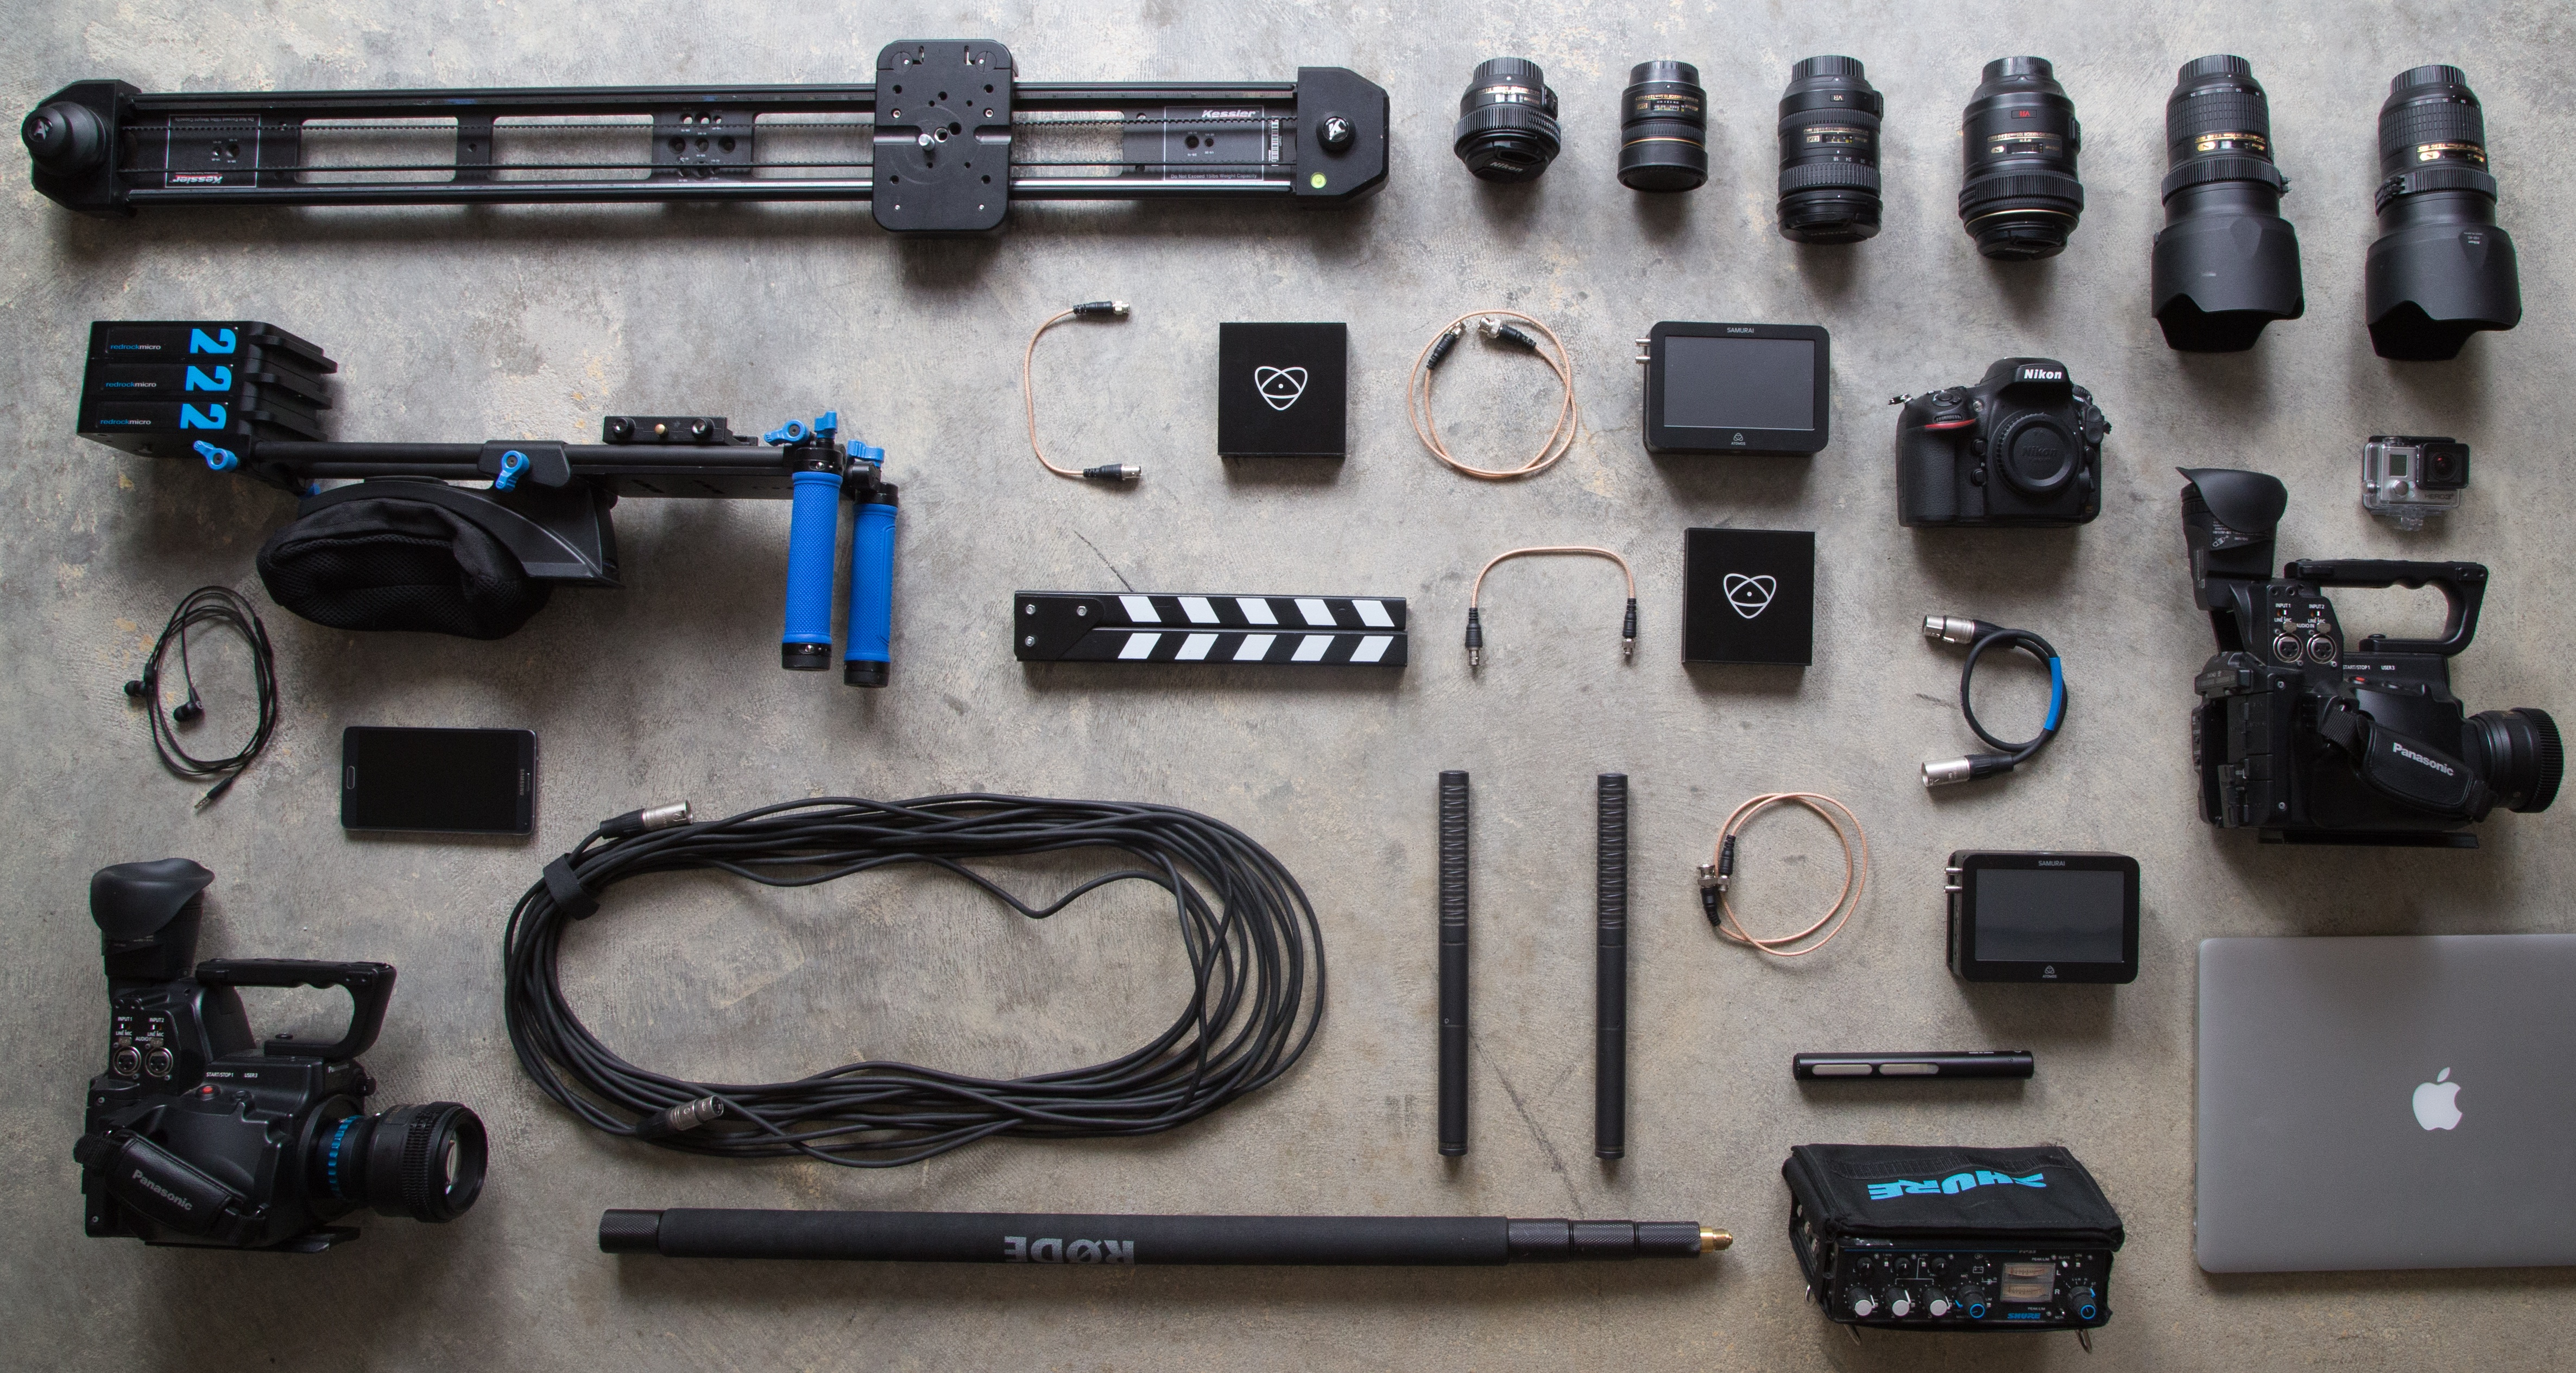 Camera Gear, Accessories, Cables, Camera, Collection, HQ Photo